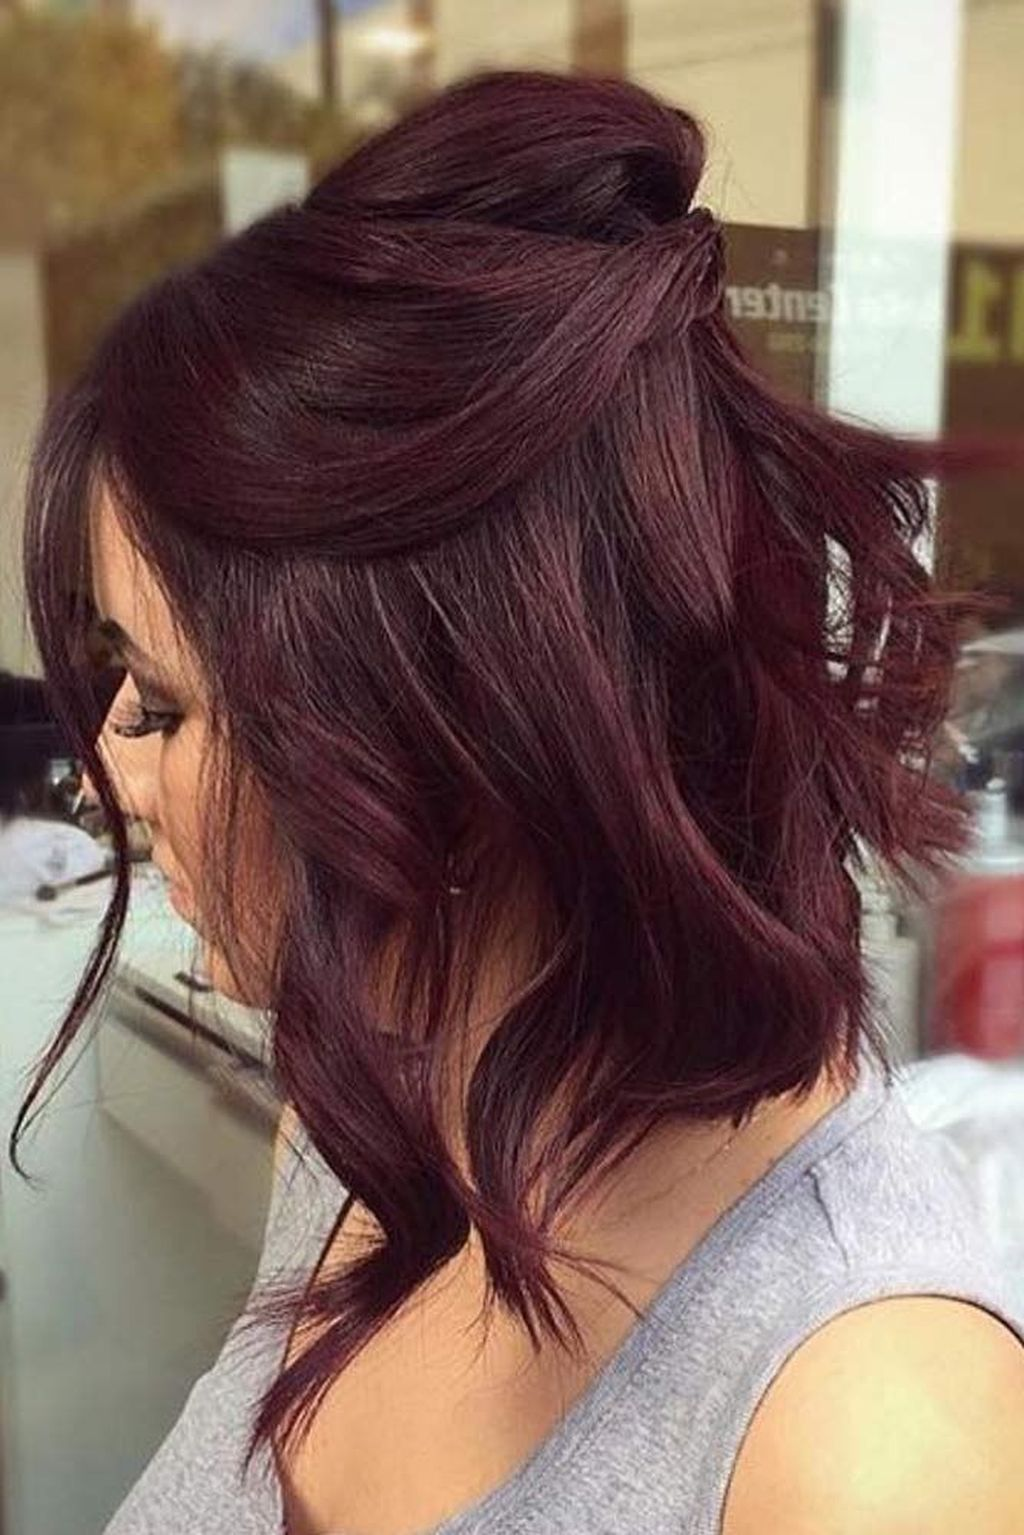 36 Perfect Fall Hair Colors Ideas For Women With Images Wine Hair Wine Hair Color Hair Color Burgundy